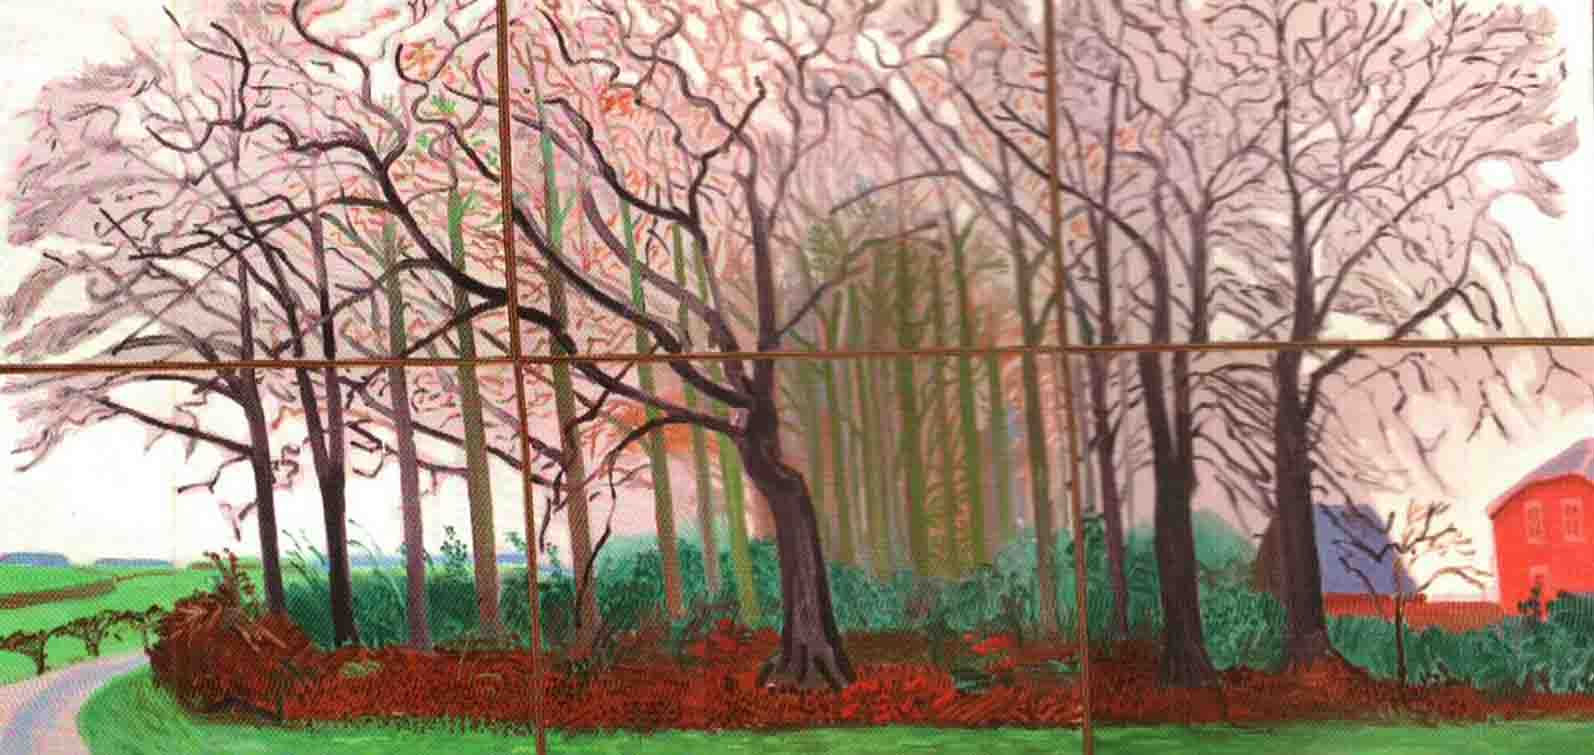 David Hockney Six Part Study for Bigger Trees 2007